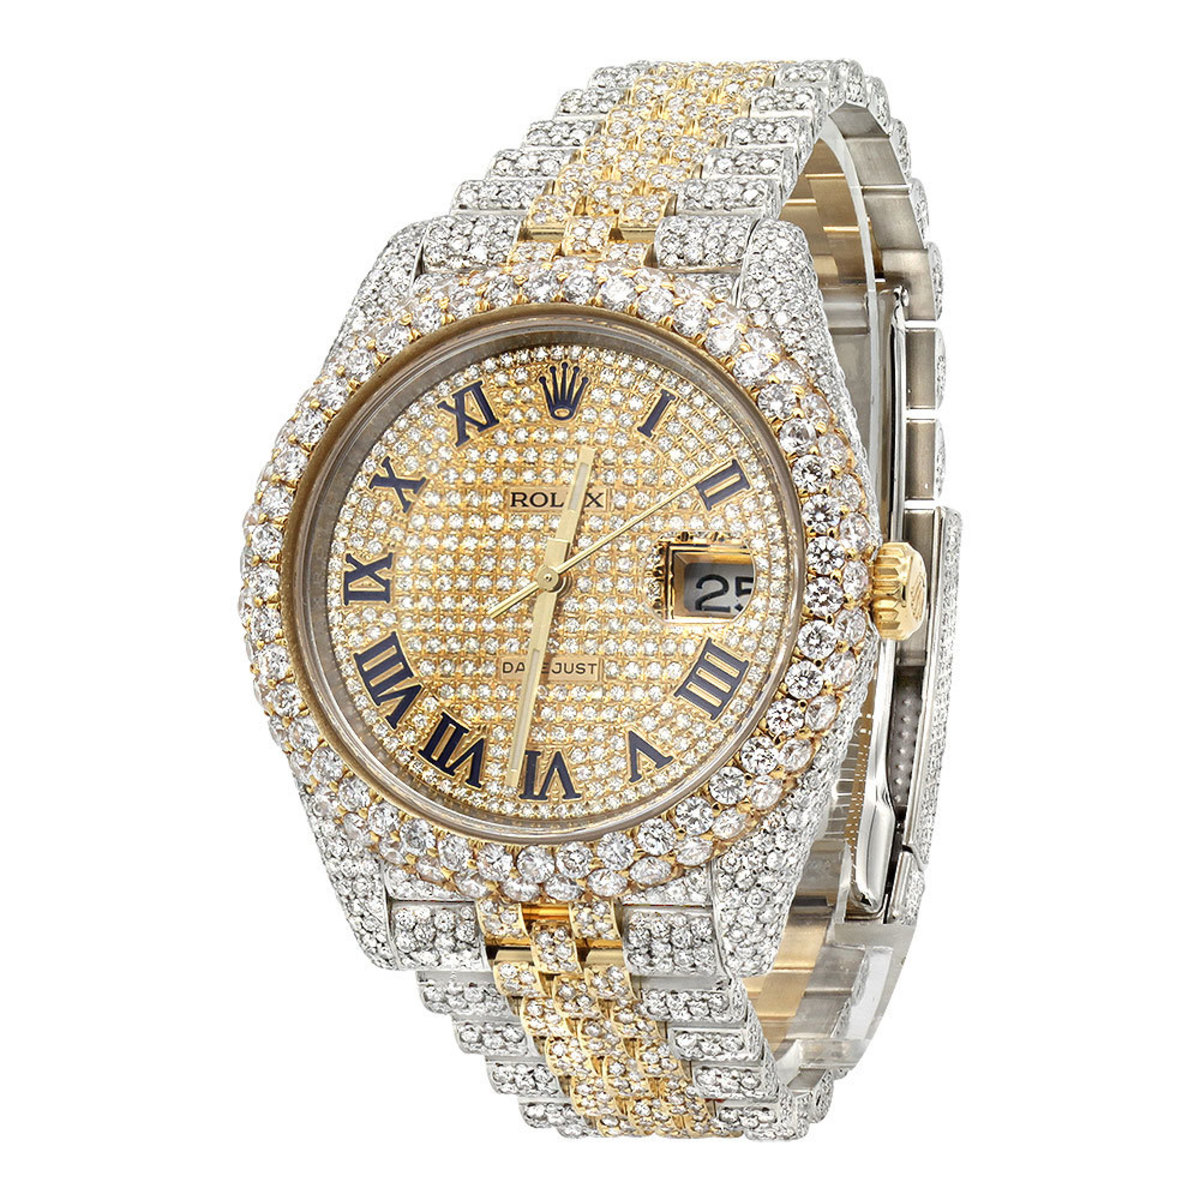 The History of the Rolex Watch